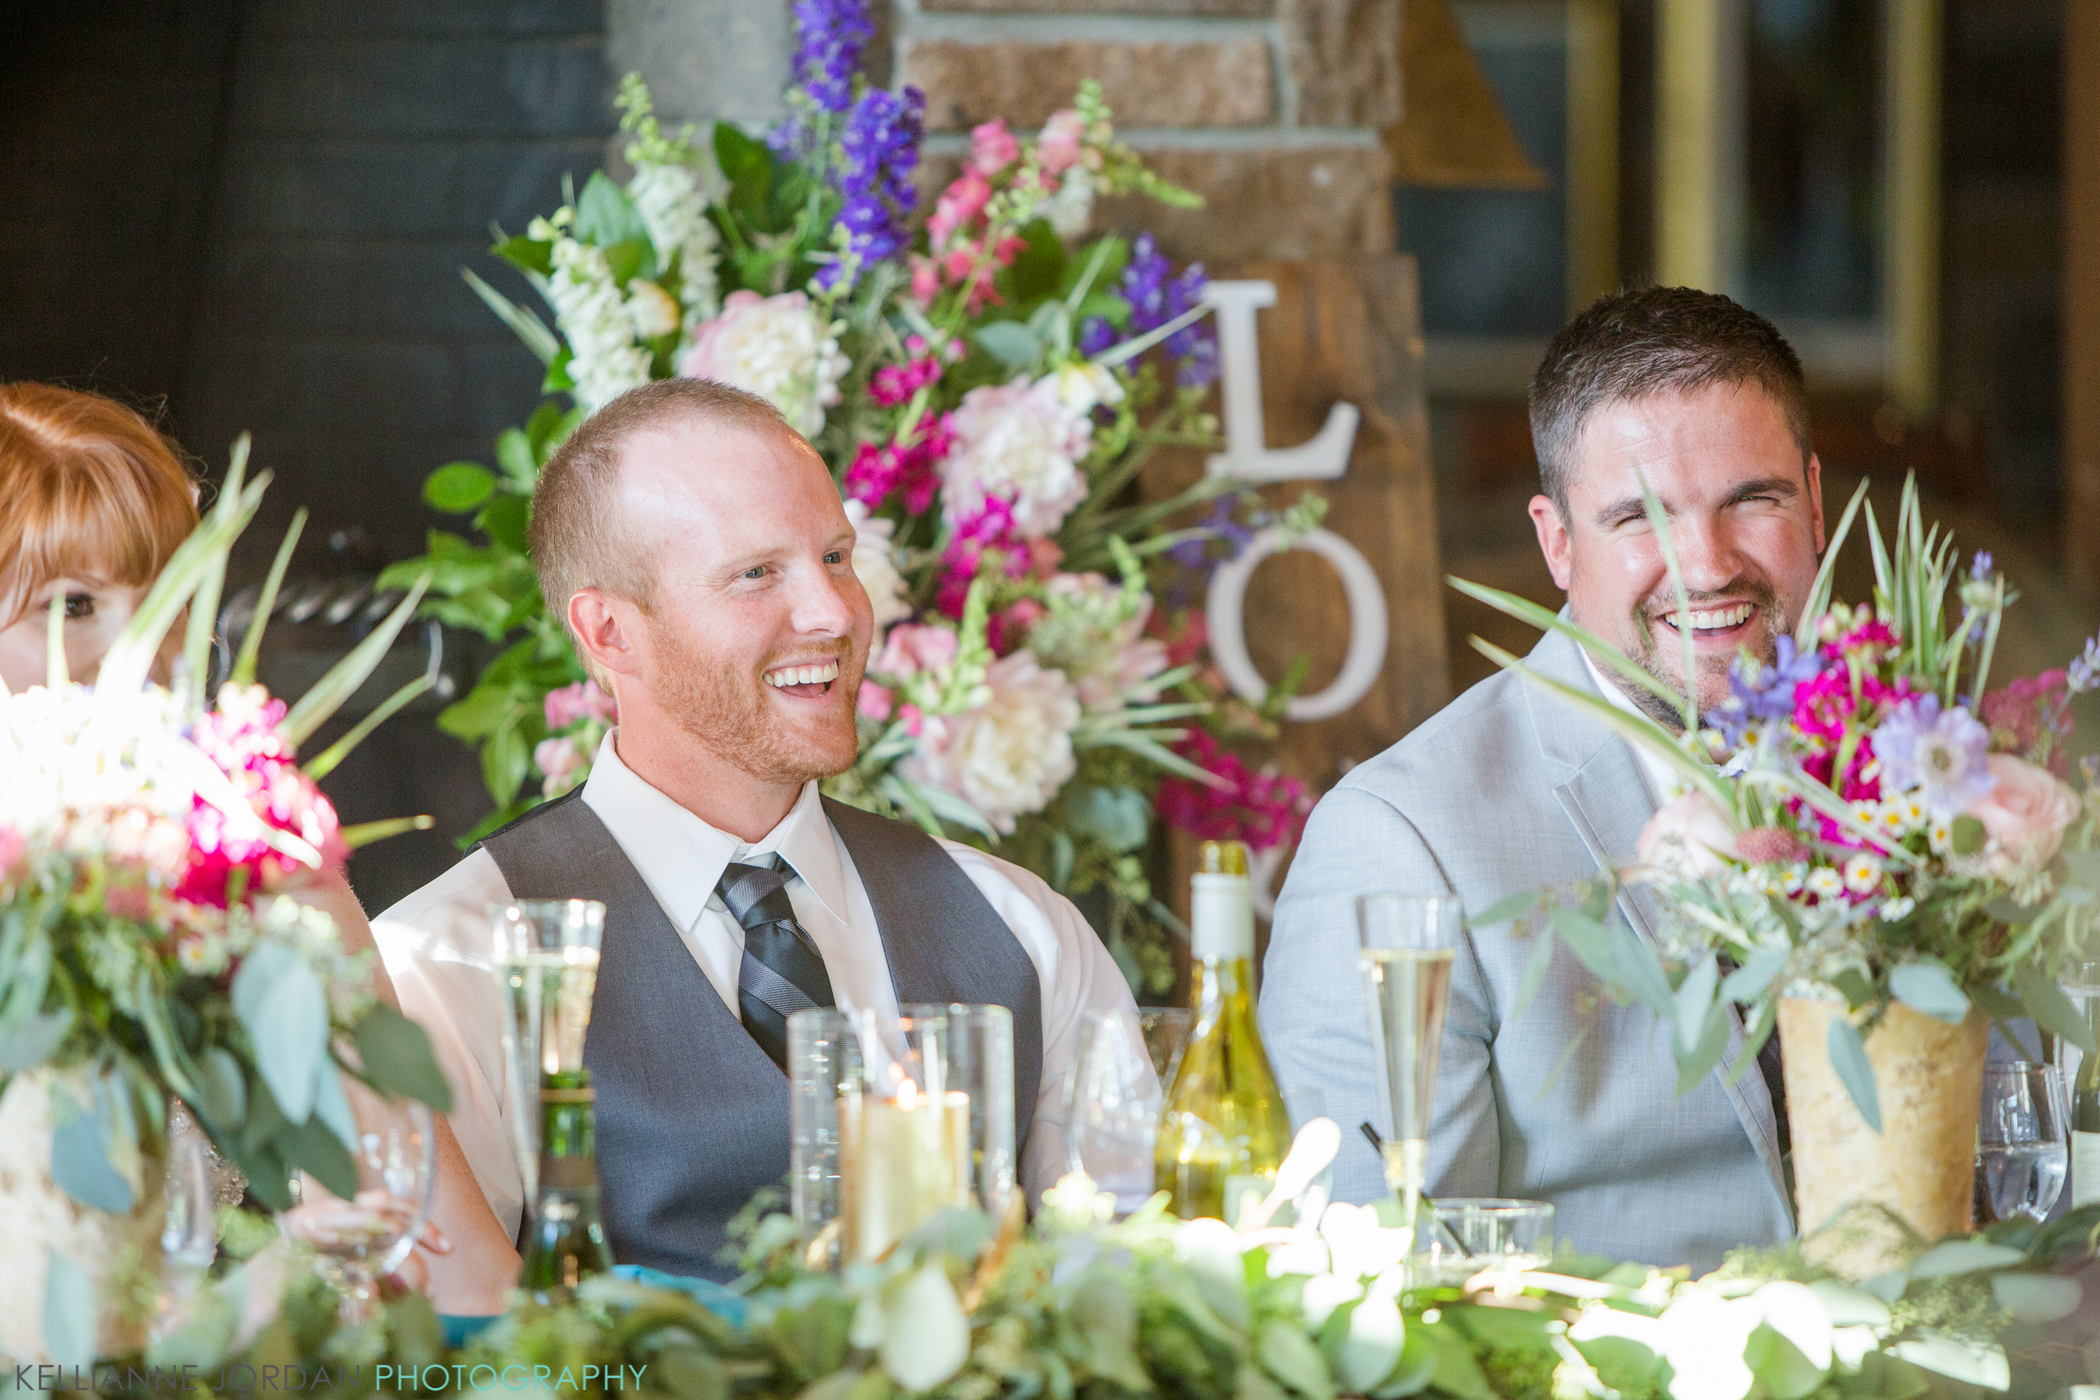 Bridalbliss.com | Bend Wedding | Oregon Event Planning and Design | Kelly Anne Photography